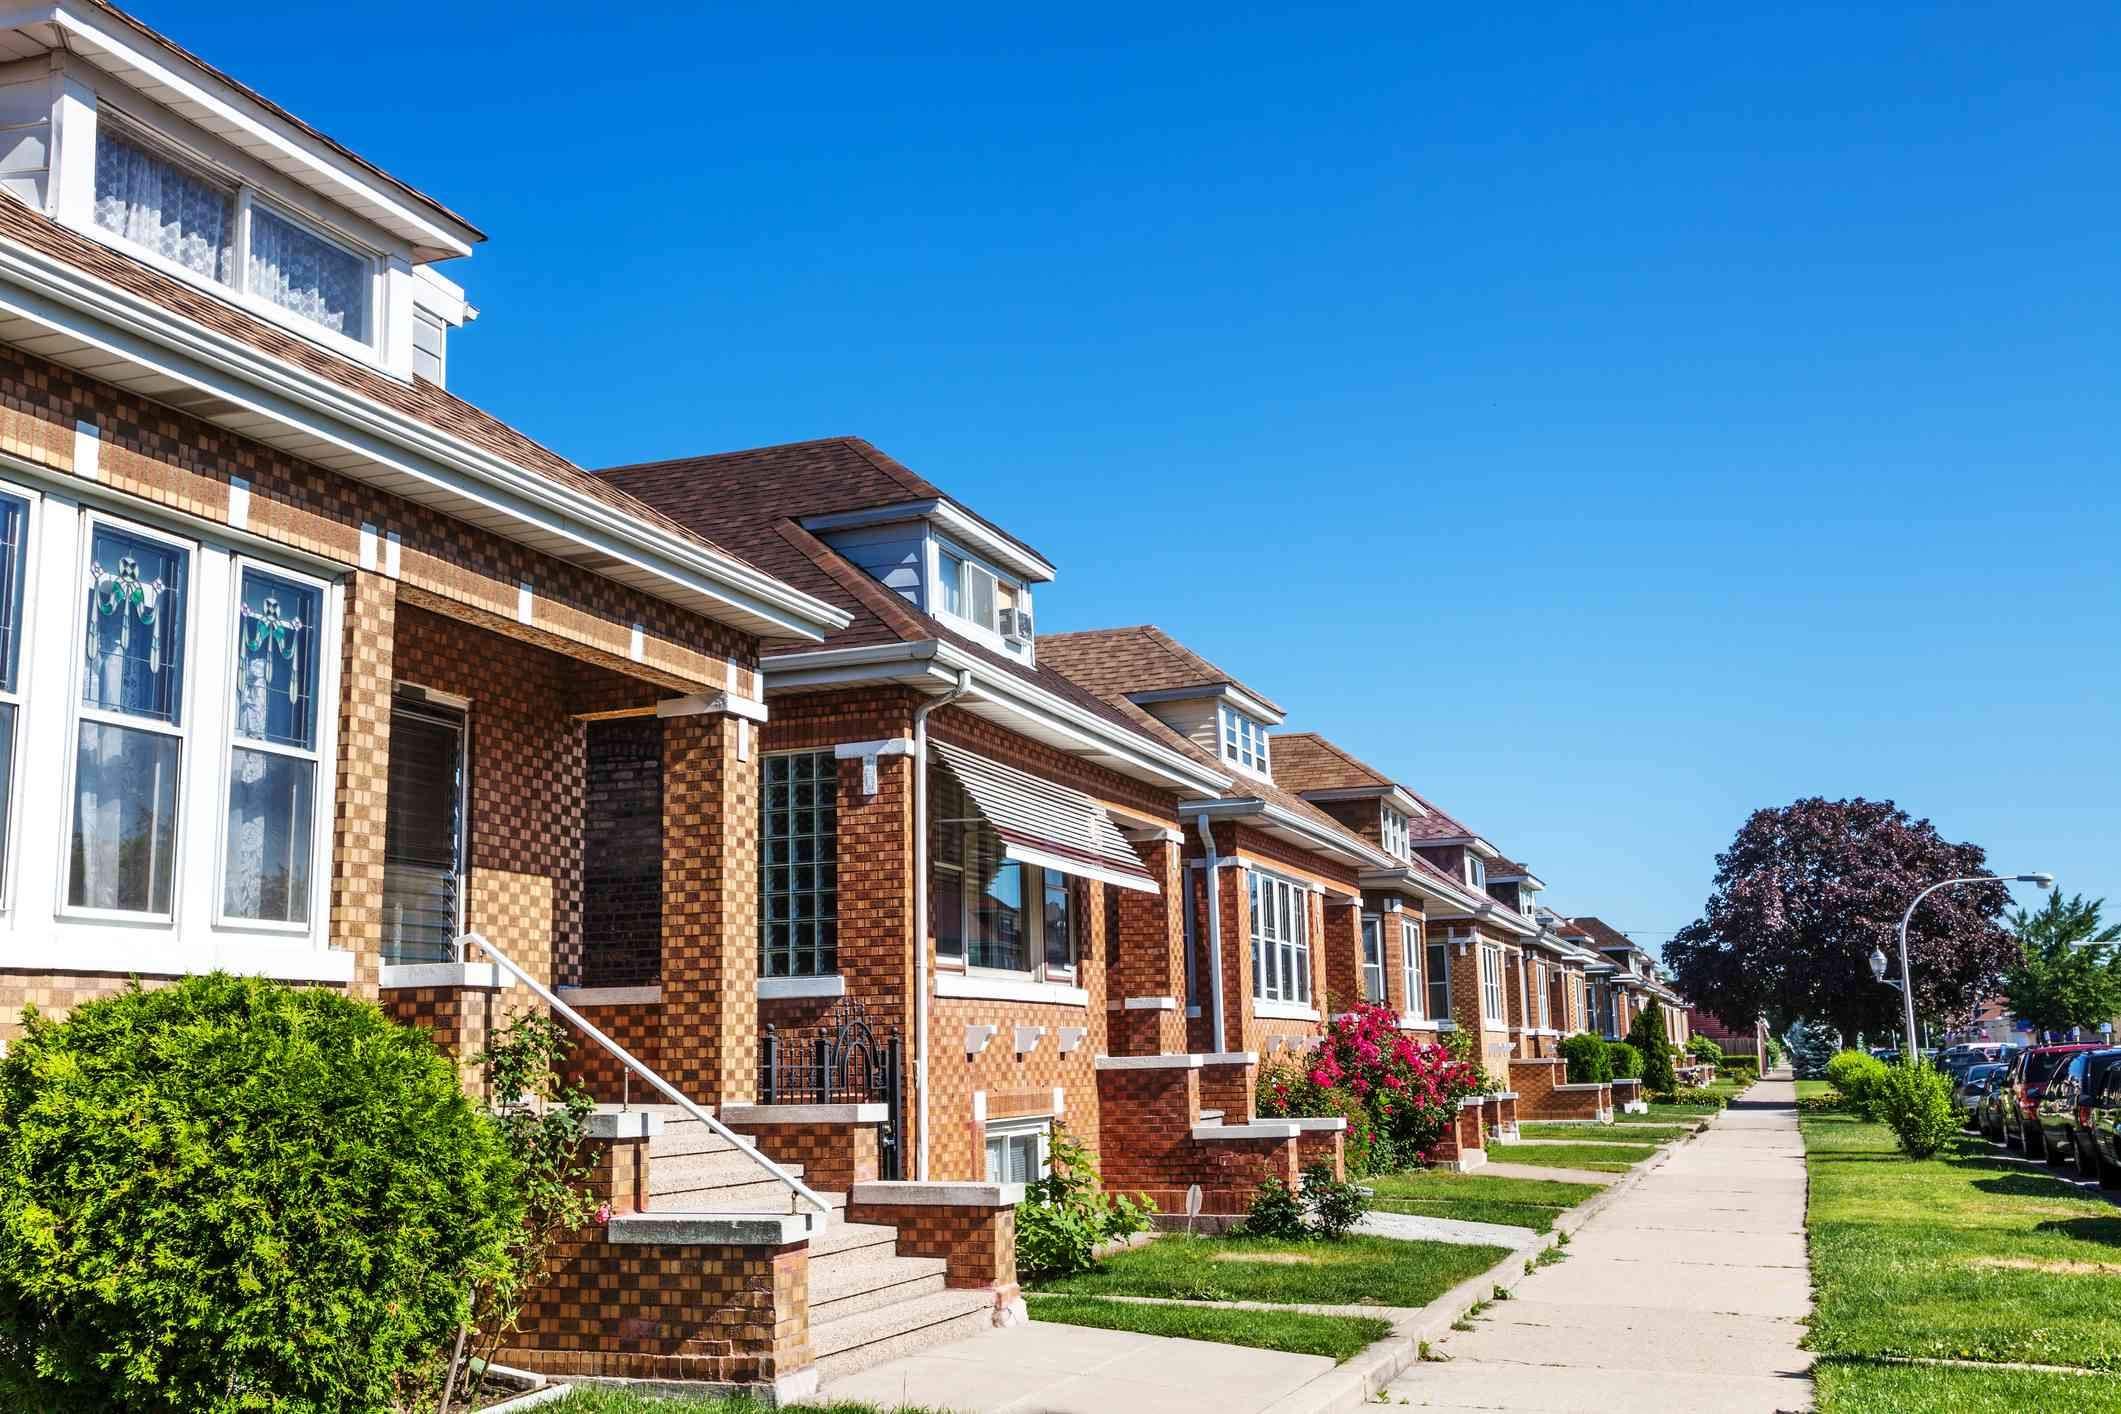 Bungalows en Archer Heights, Chicago